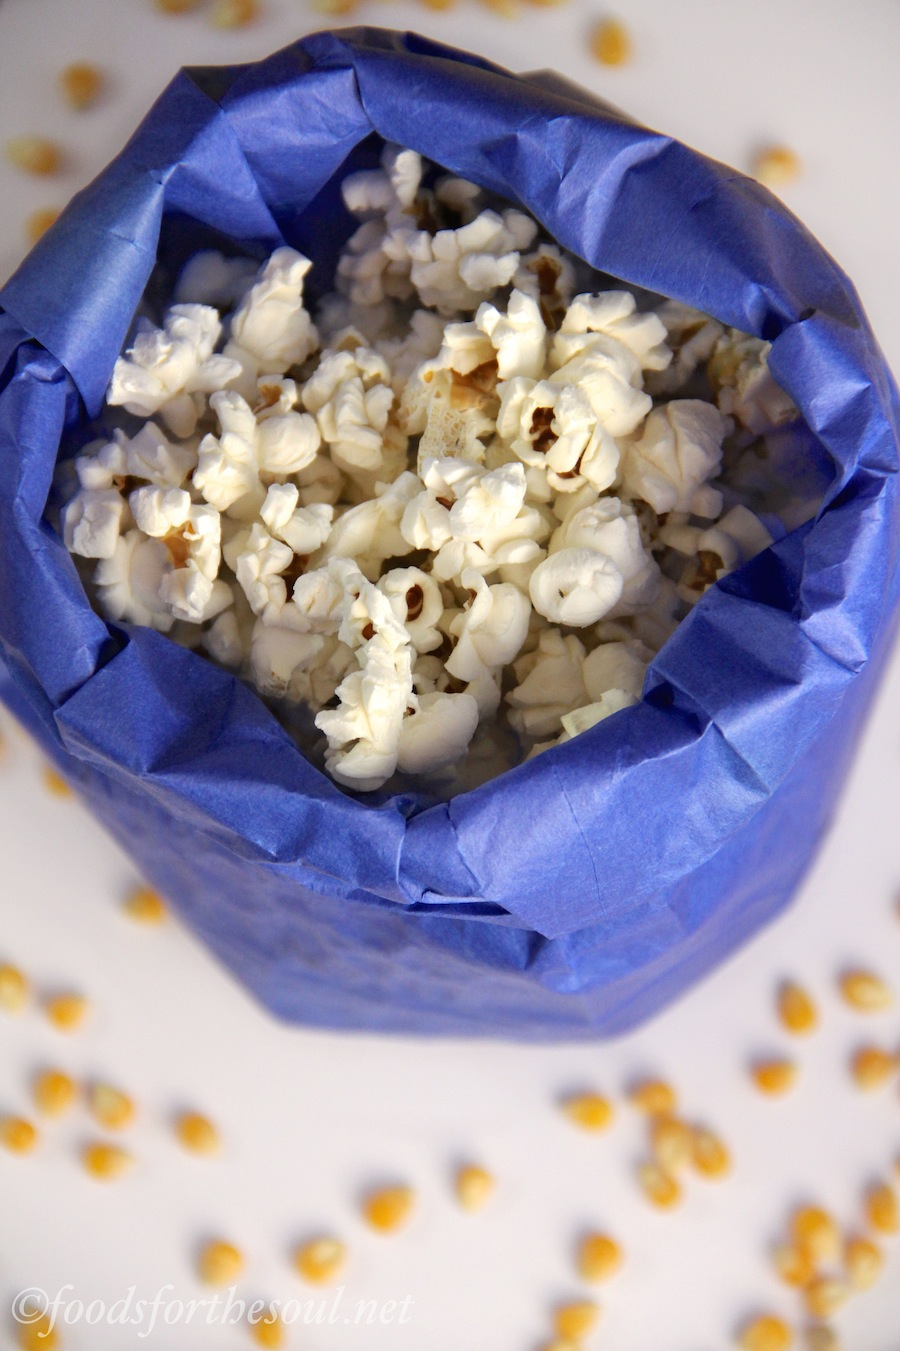 Do you know the microwave popcorn trick? All you need is a paper bag! {Sunday Funday #6 on foodsforthesoul.net}